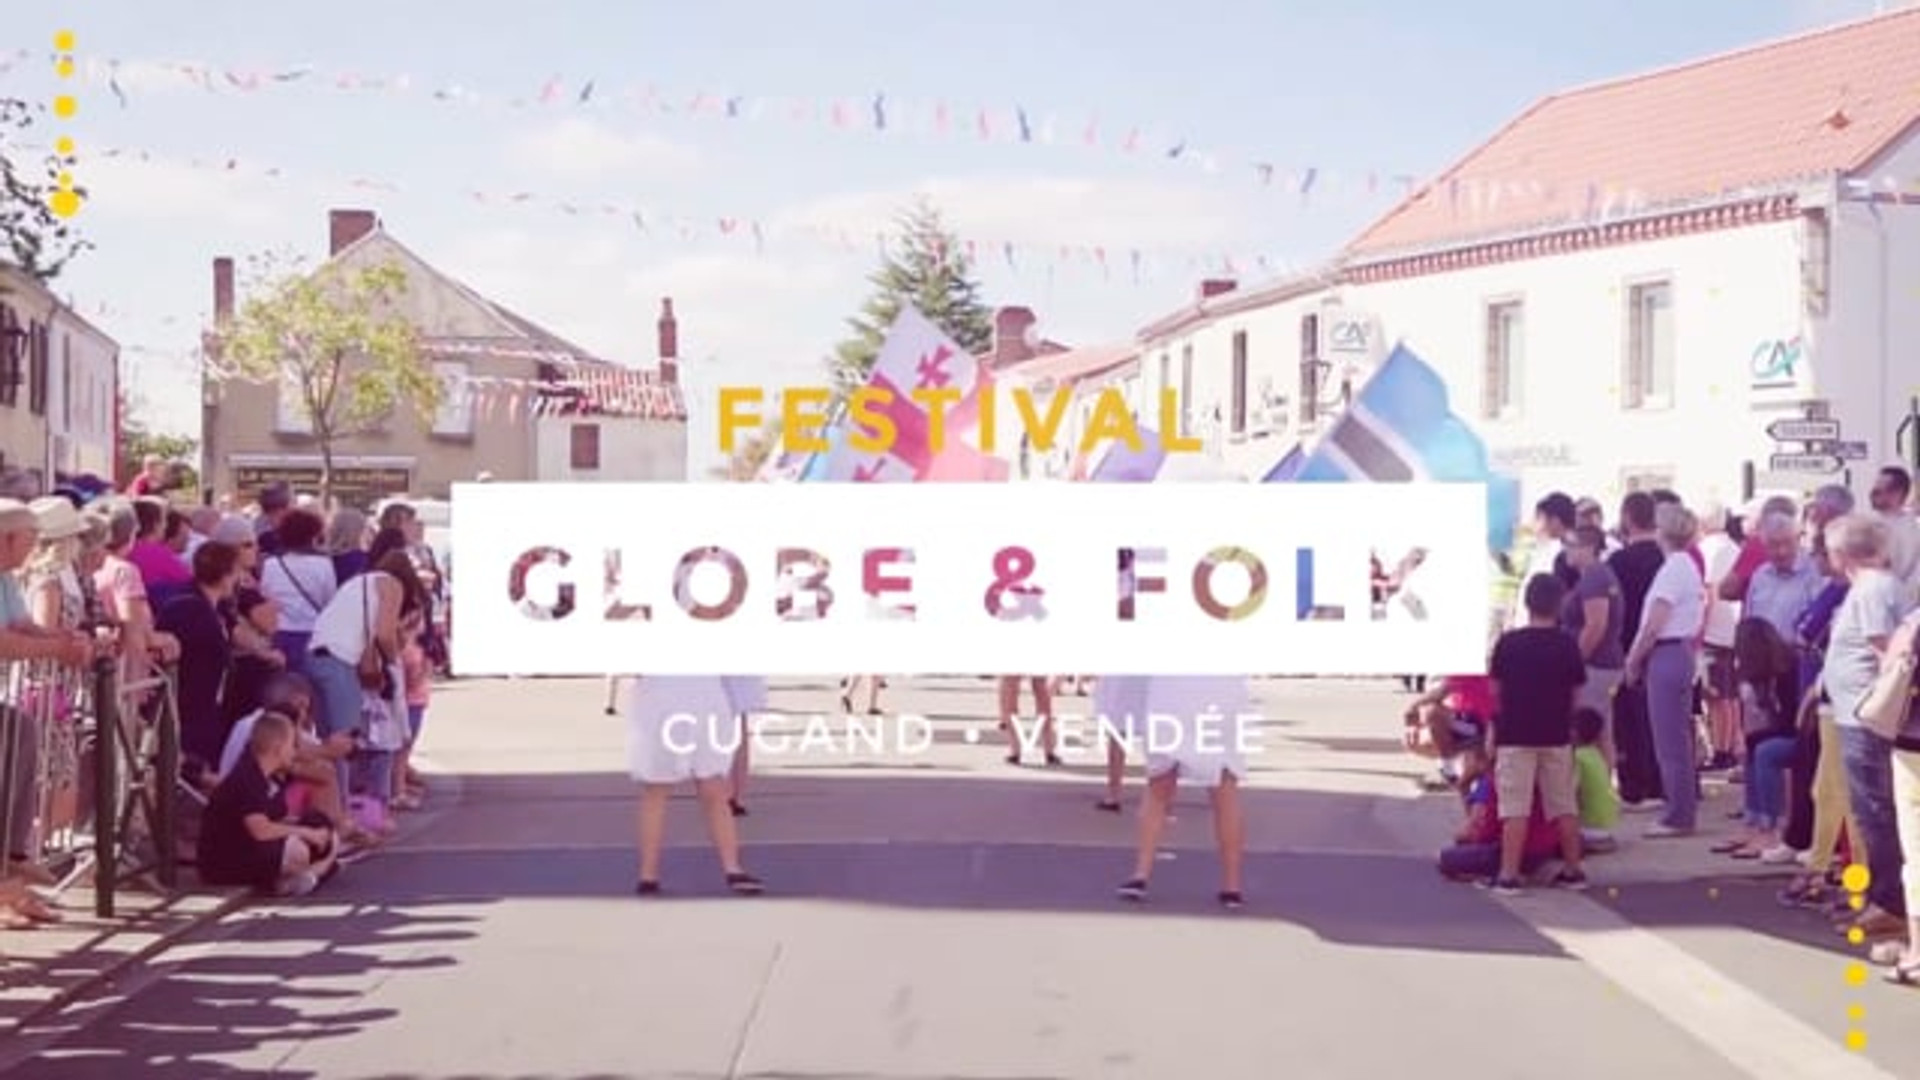 Aftermovie - Festival Globe & Folk de Cugand